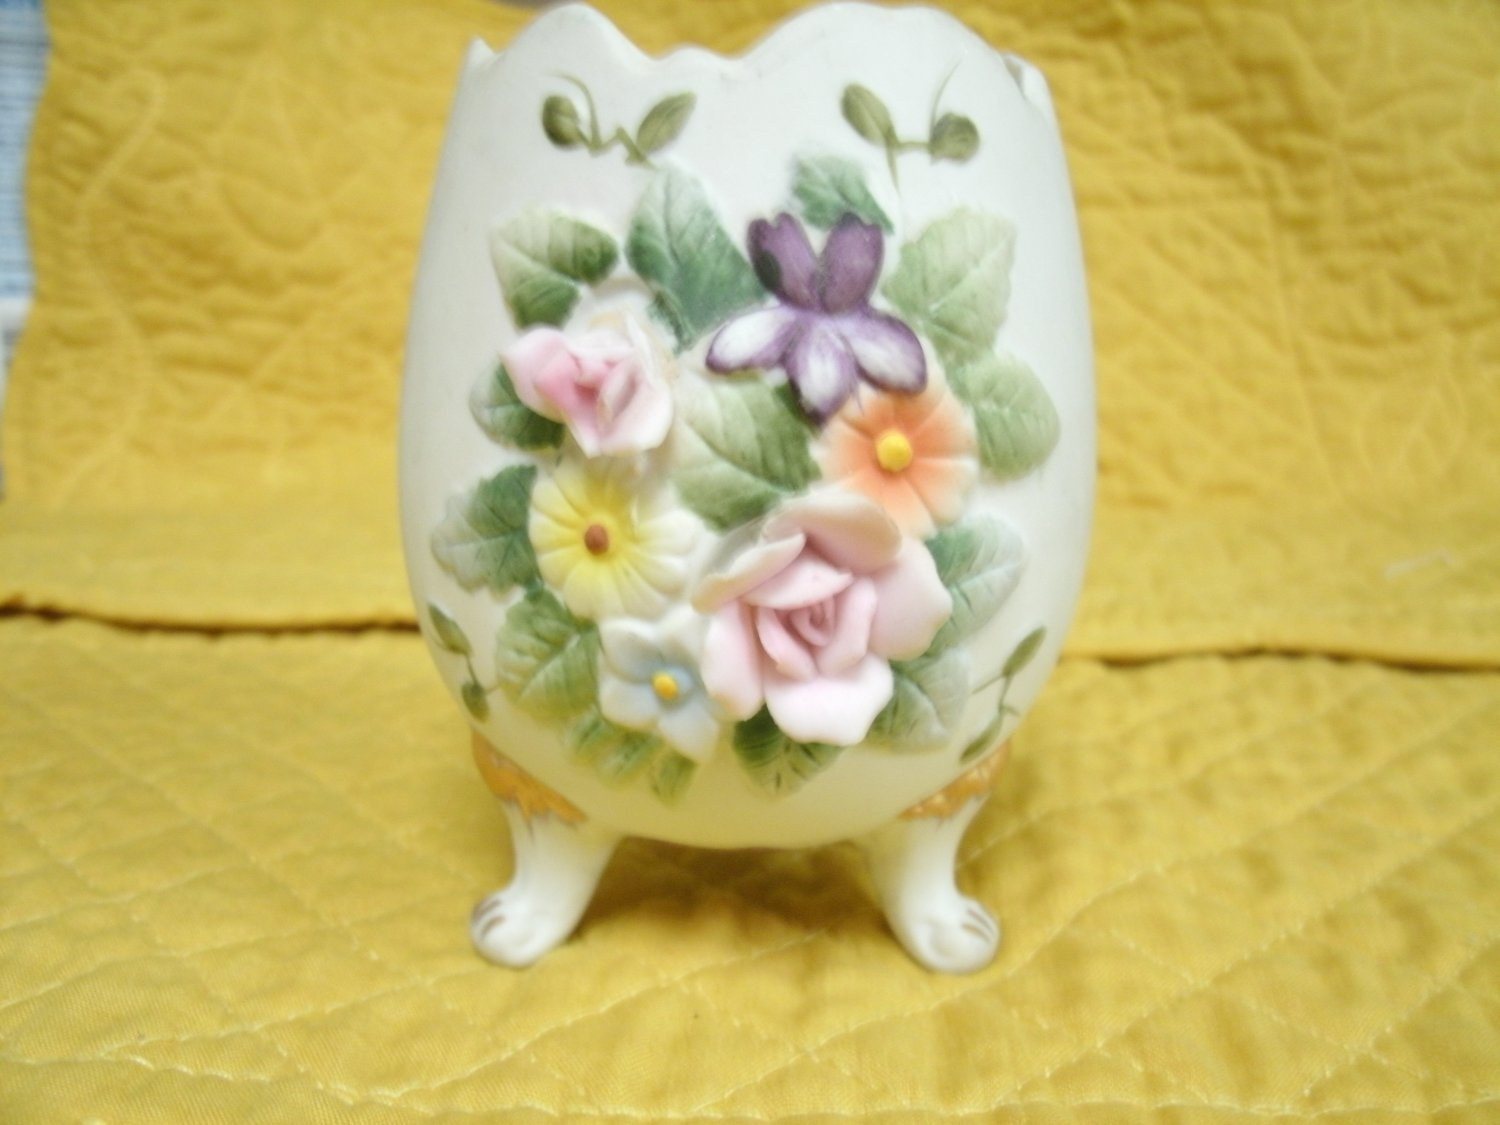 Lefton China Trinket Egg Vase KW5442 3 Legs Gold Accents 3 1/2 Inches Tall